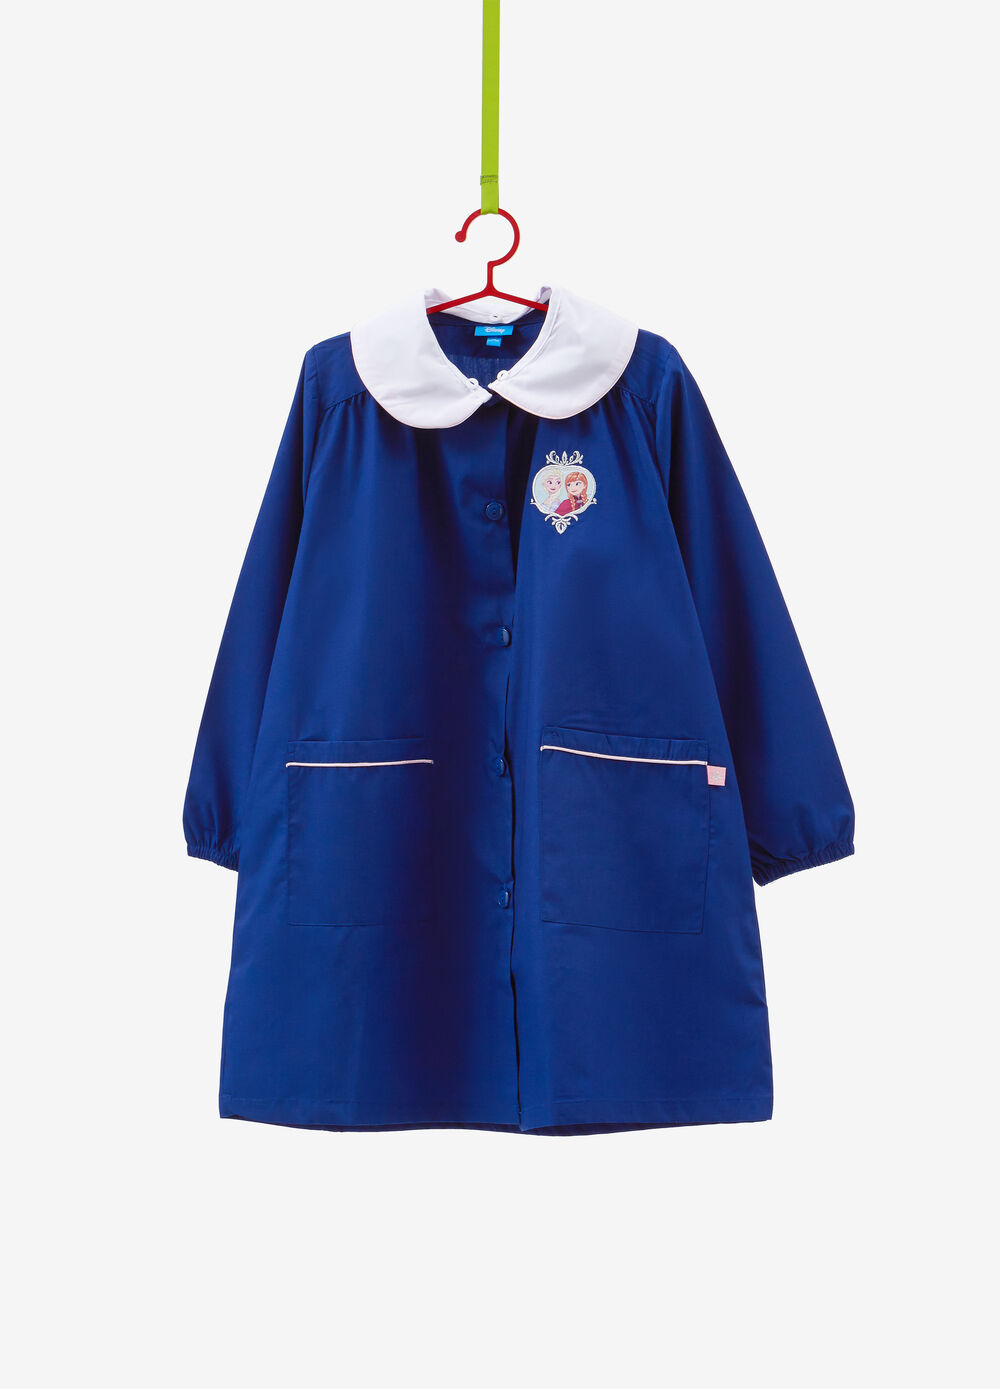 Disney Princess cotton smock